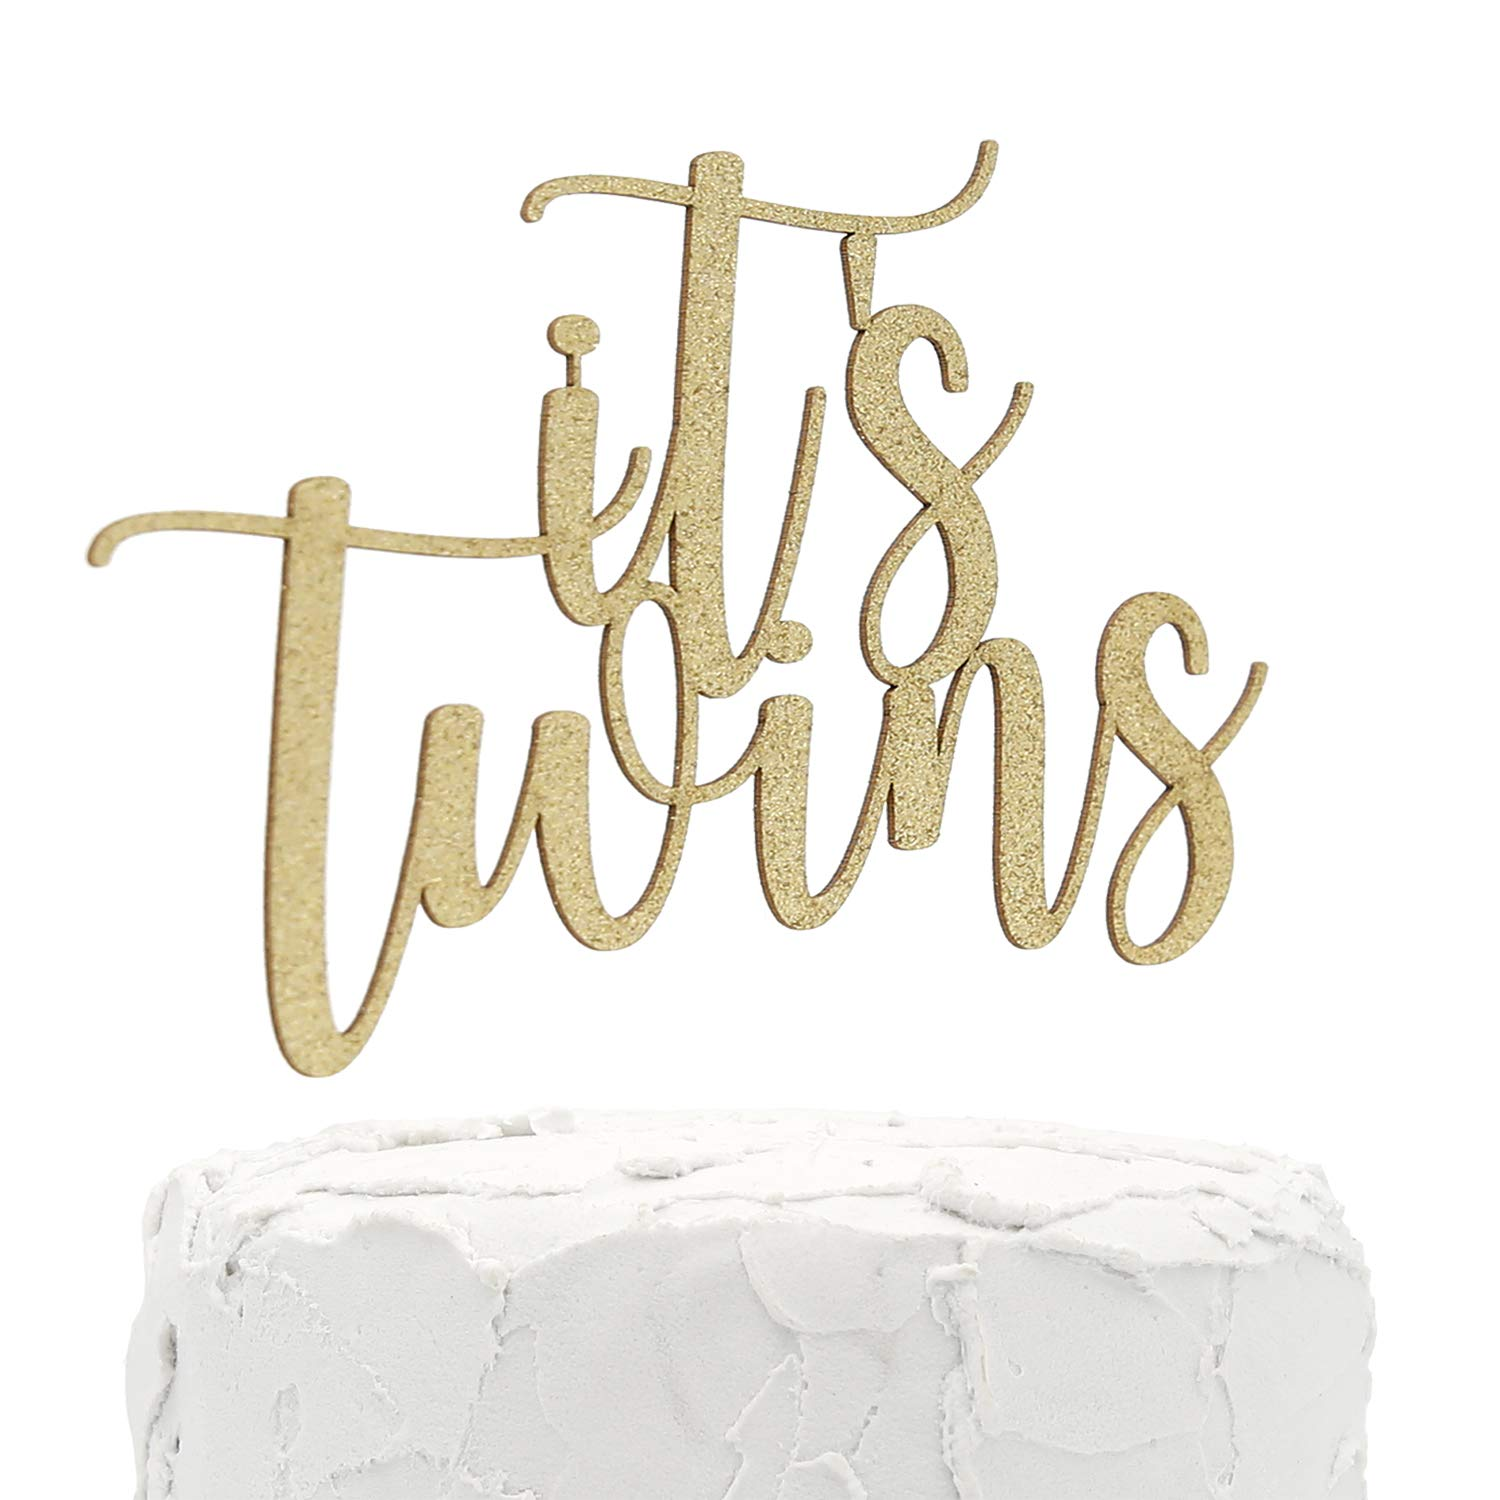 NANASUKO Baby Shower Cake Topper - it's twins - Double Sided Gold Glitter - Premium Quality Made in USA (it's twins)